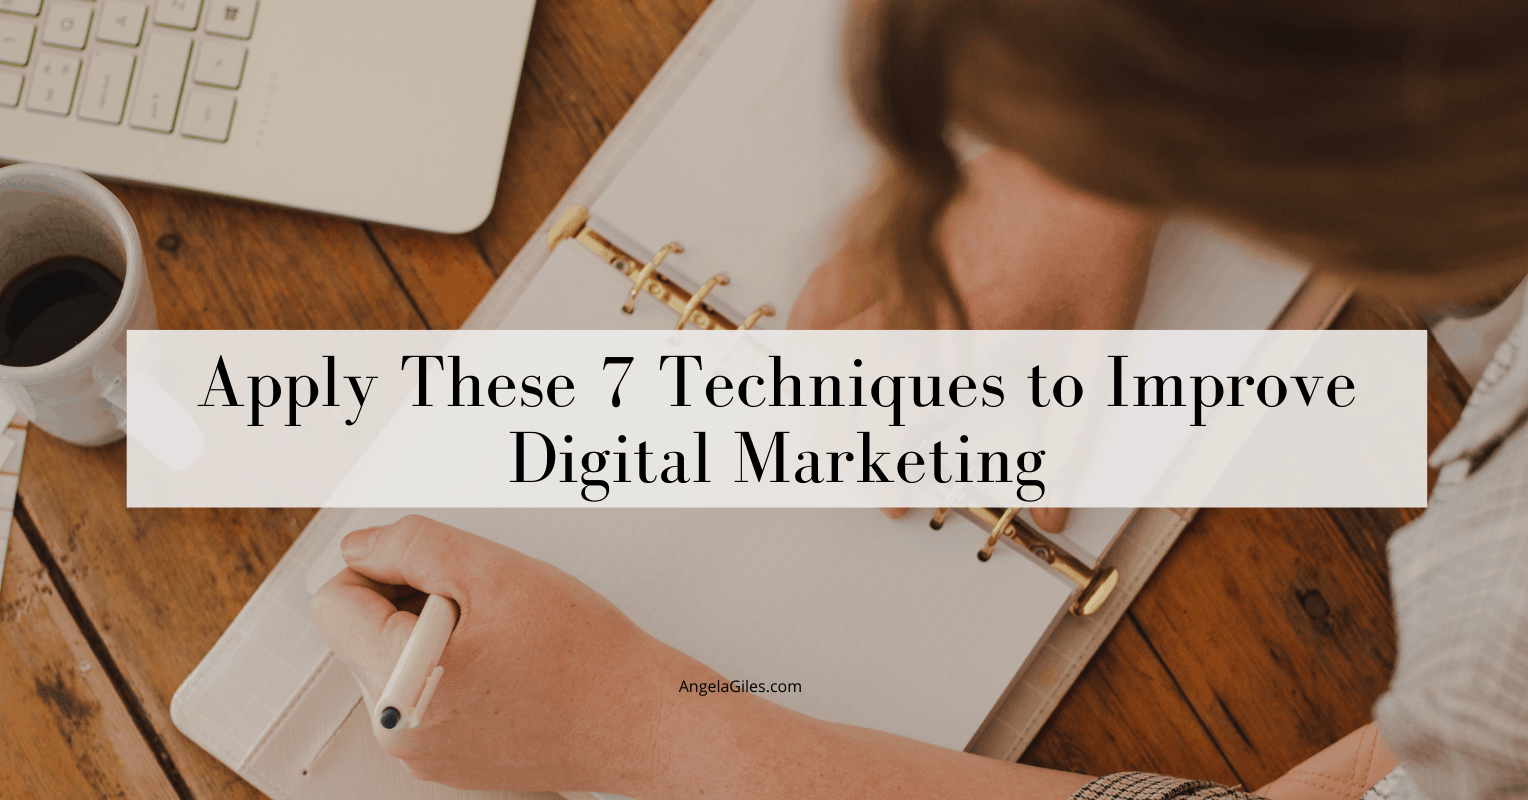 Apply These 7 Techniques To Improve Digital Marketing